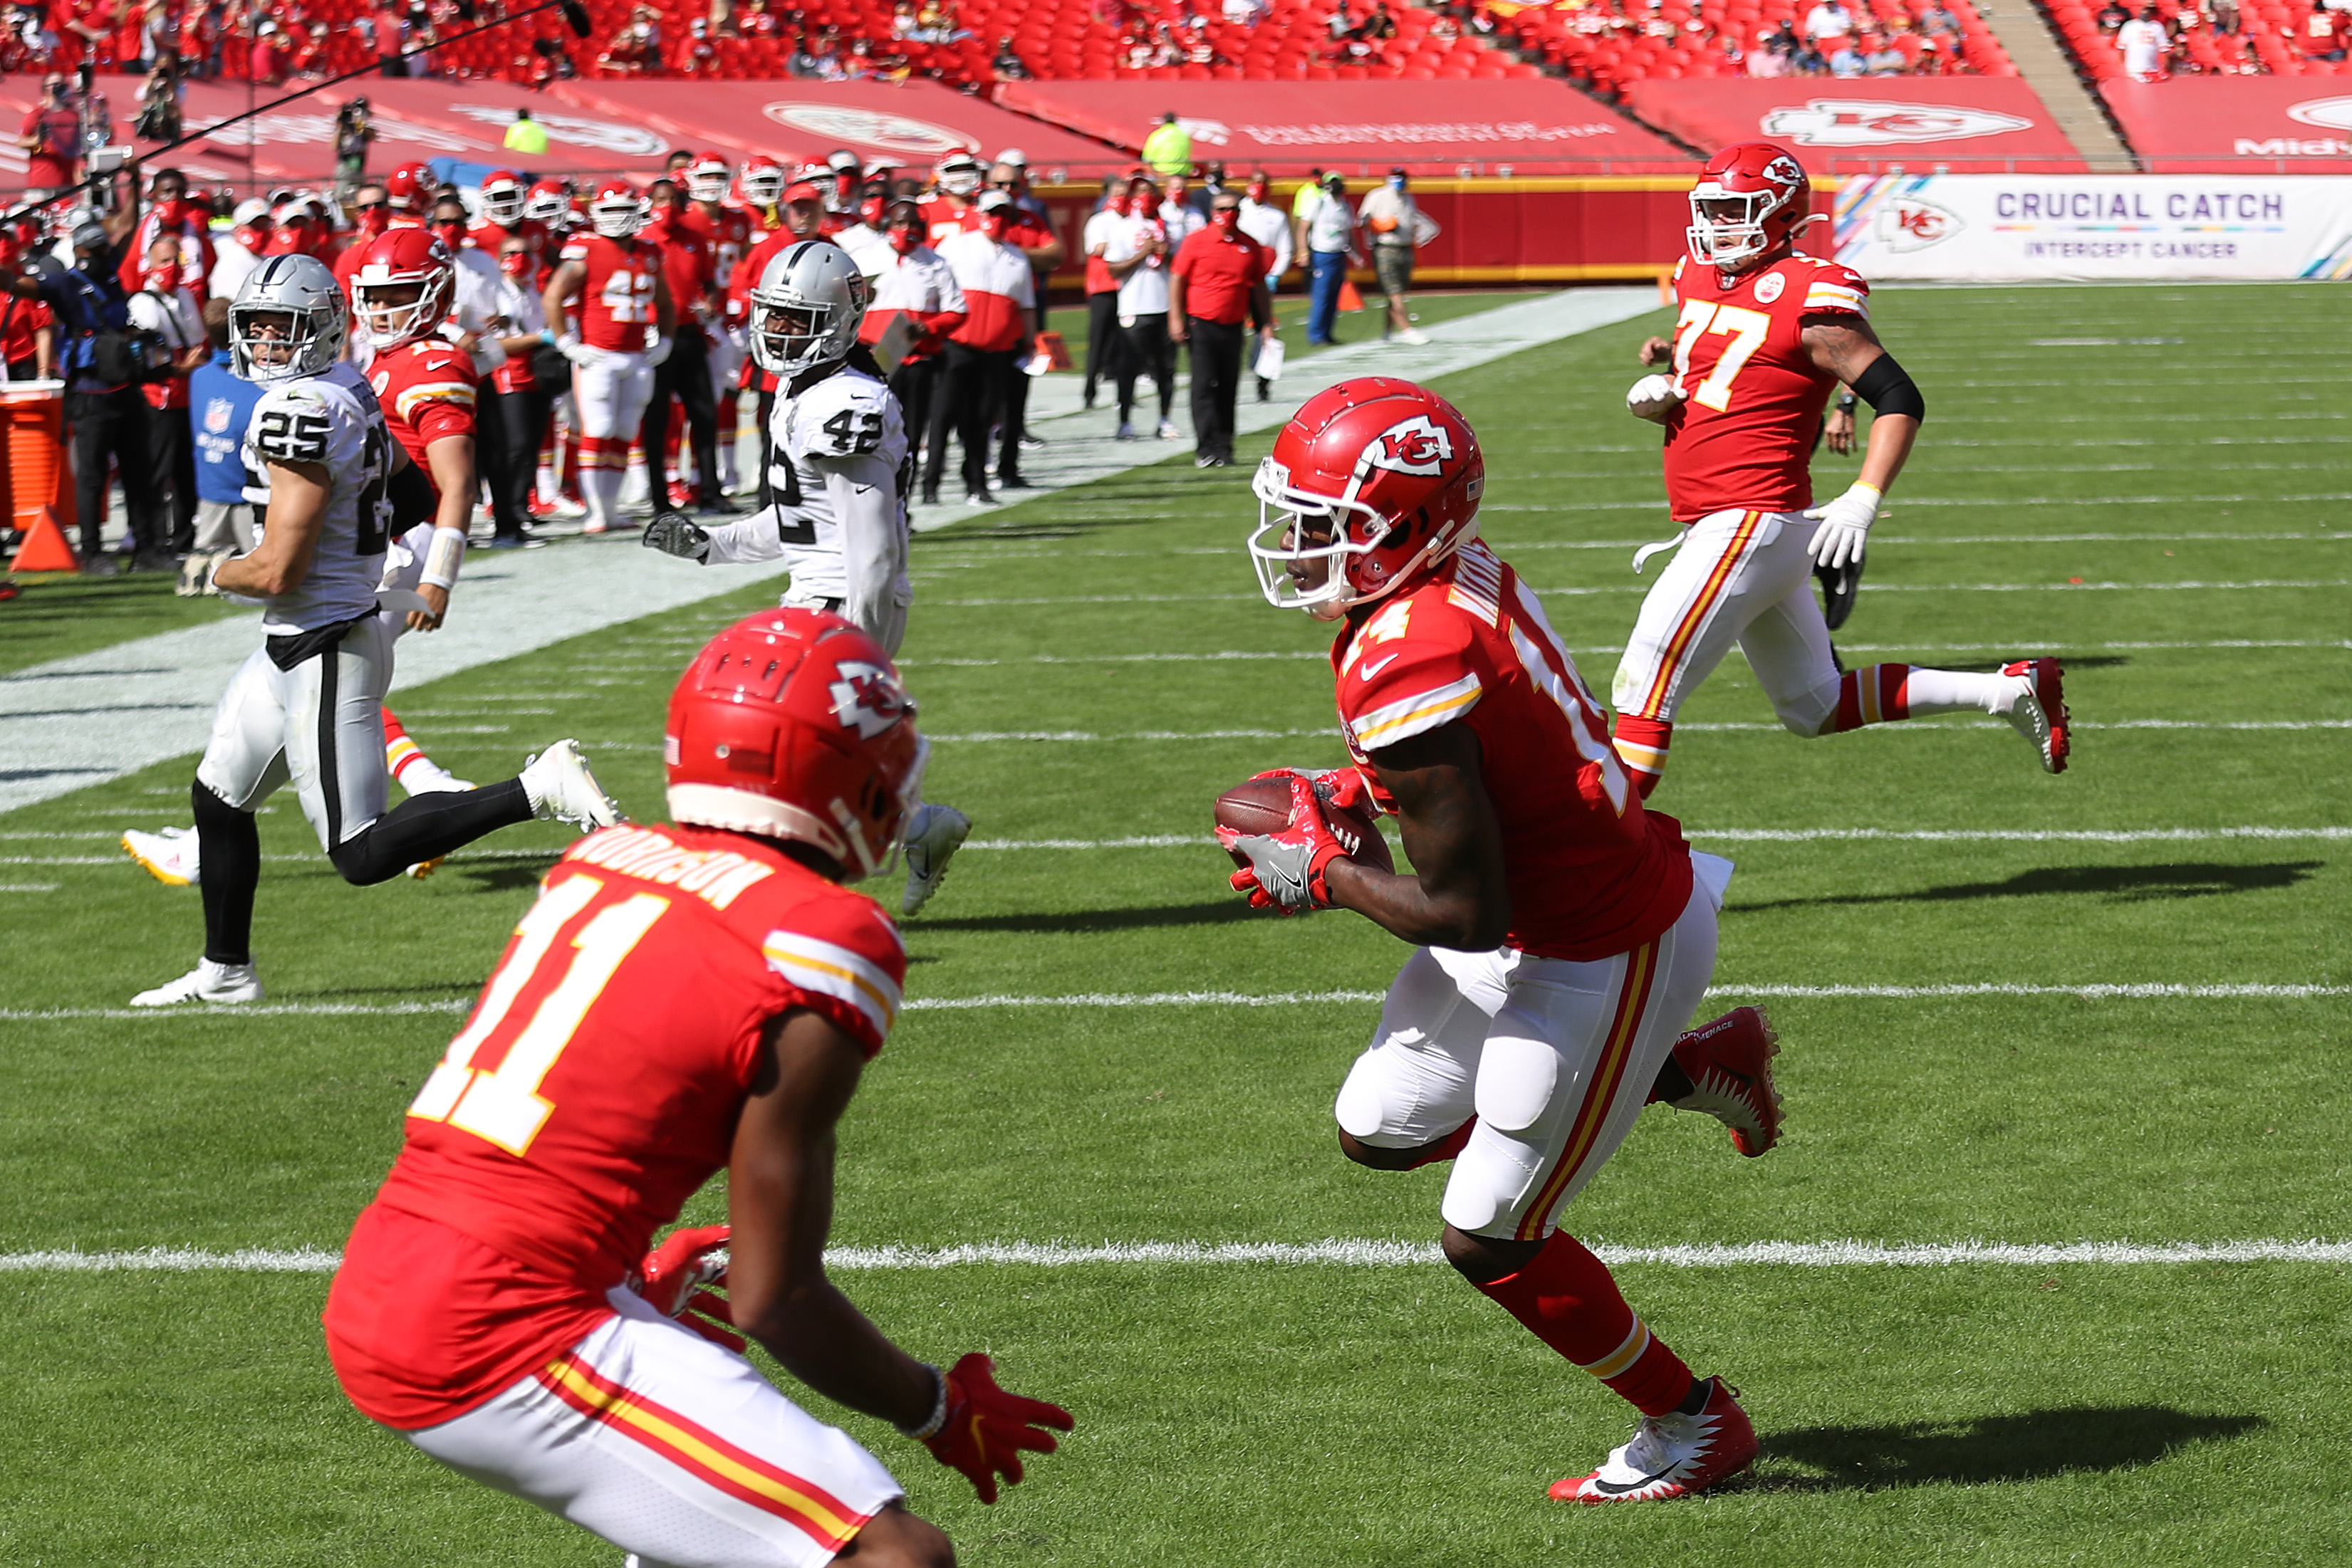 Sammy Watkins #14 of the Kansas City Chiefs scores a touchdown reception against the Las Vegas Raiders during the second quarter at Arrowhead Stadium on October 11, 2020 in Kansas City, Missouri.